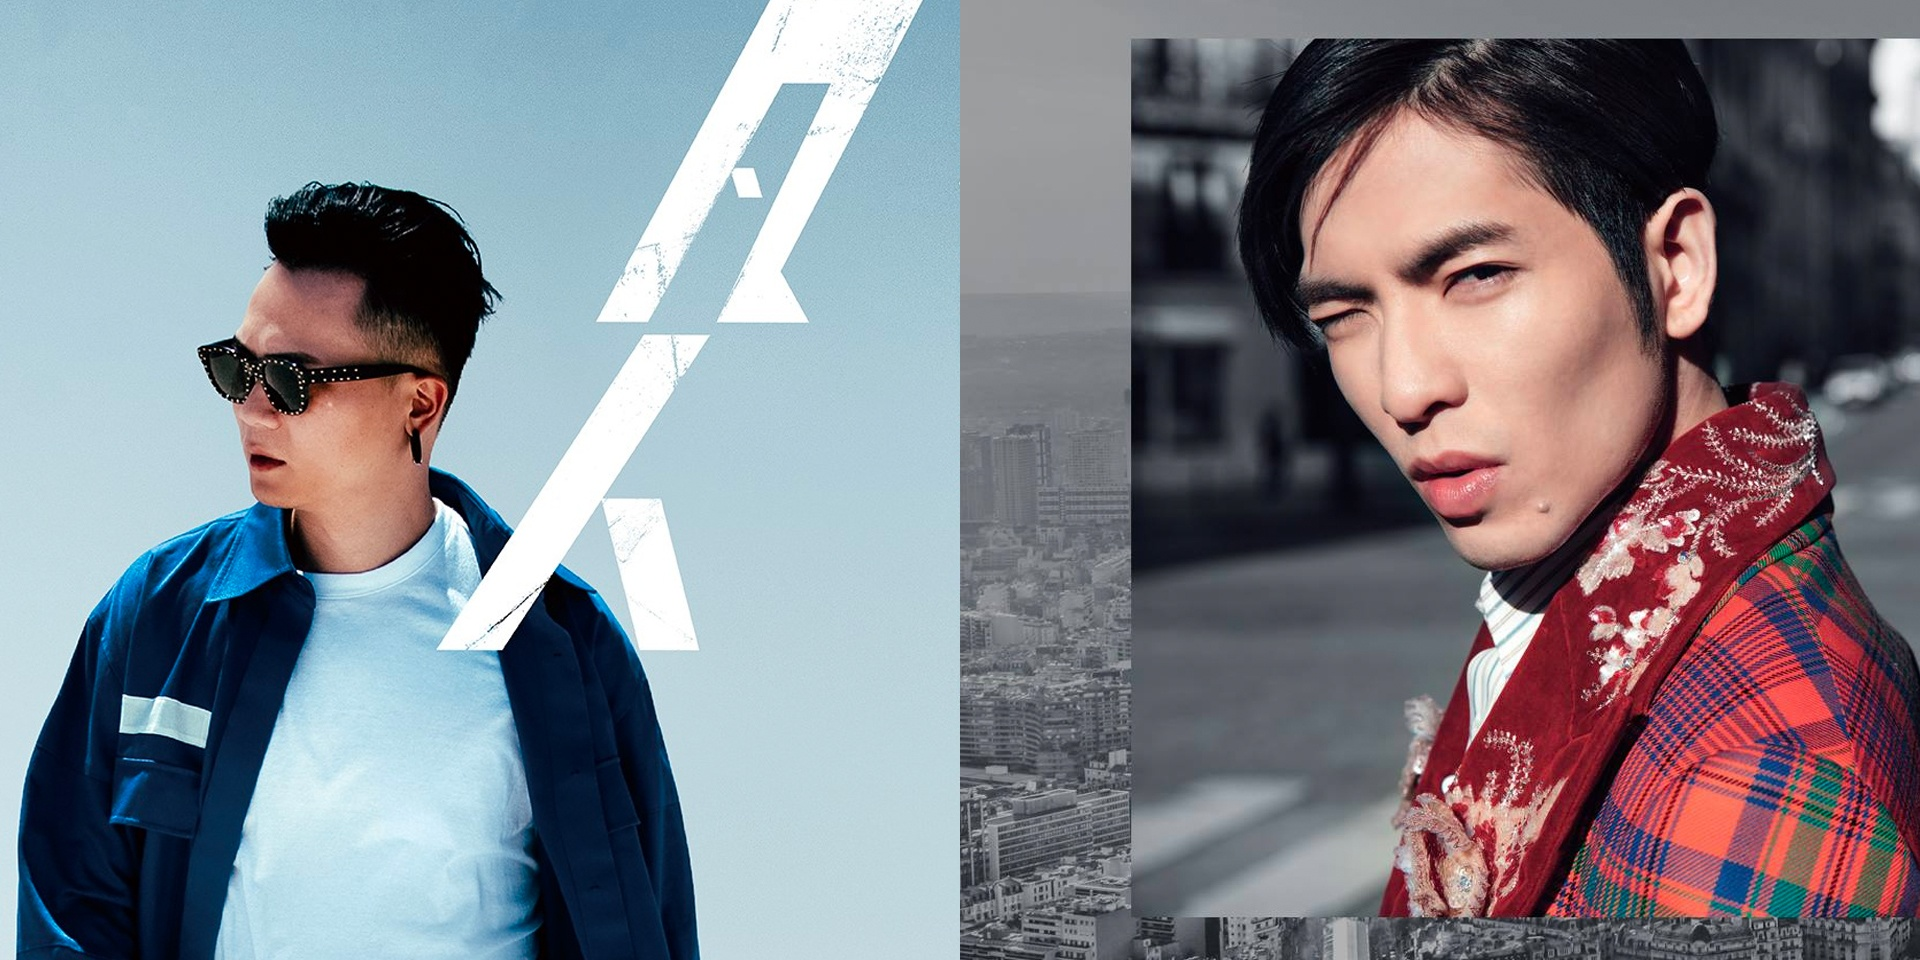 4 Mandopop songs from the charts to soundtrack your mood